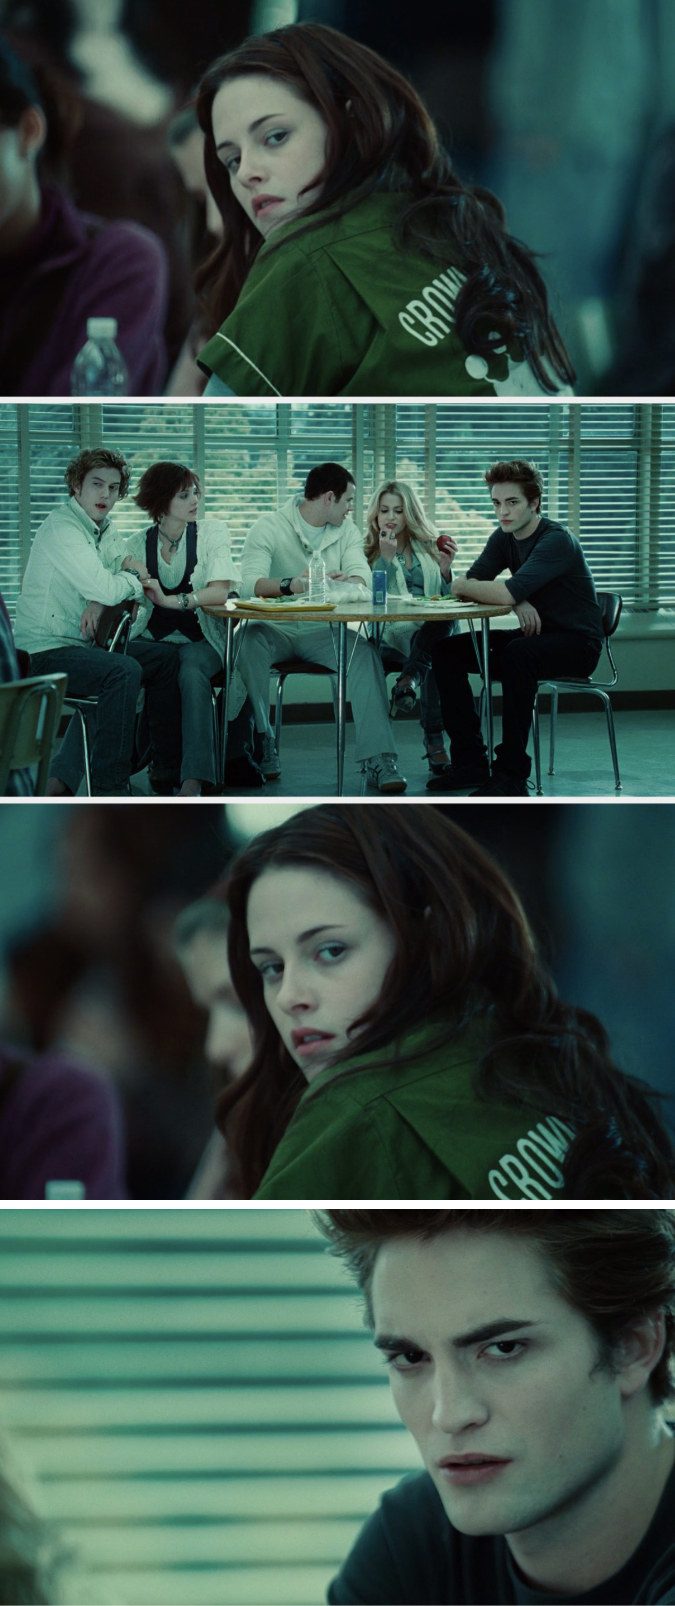 Bella and Edward just staring at each other